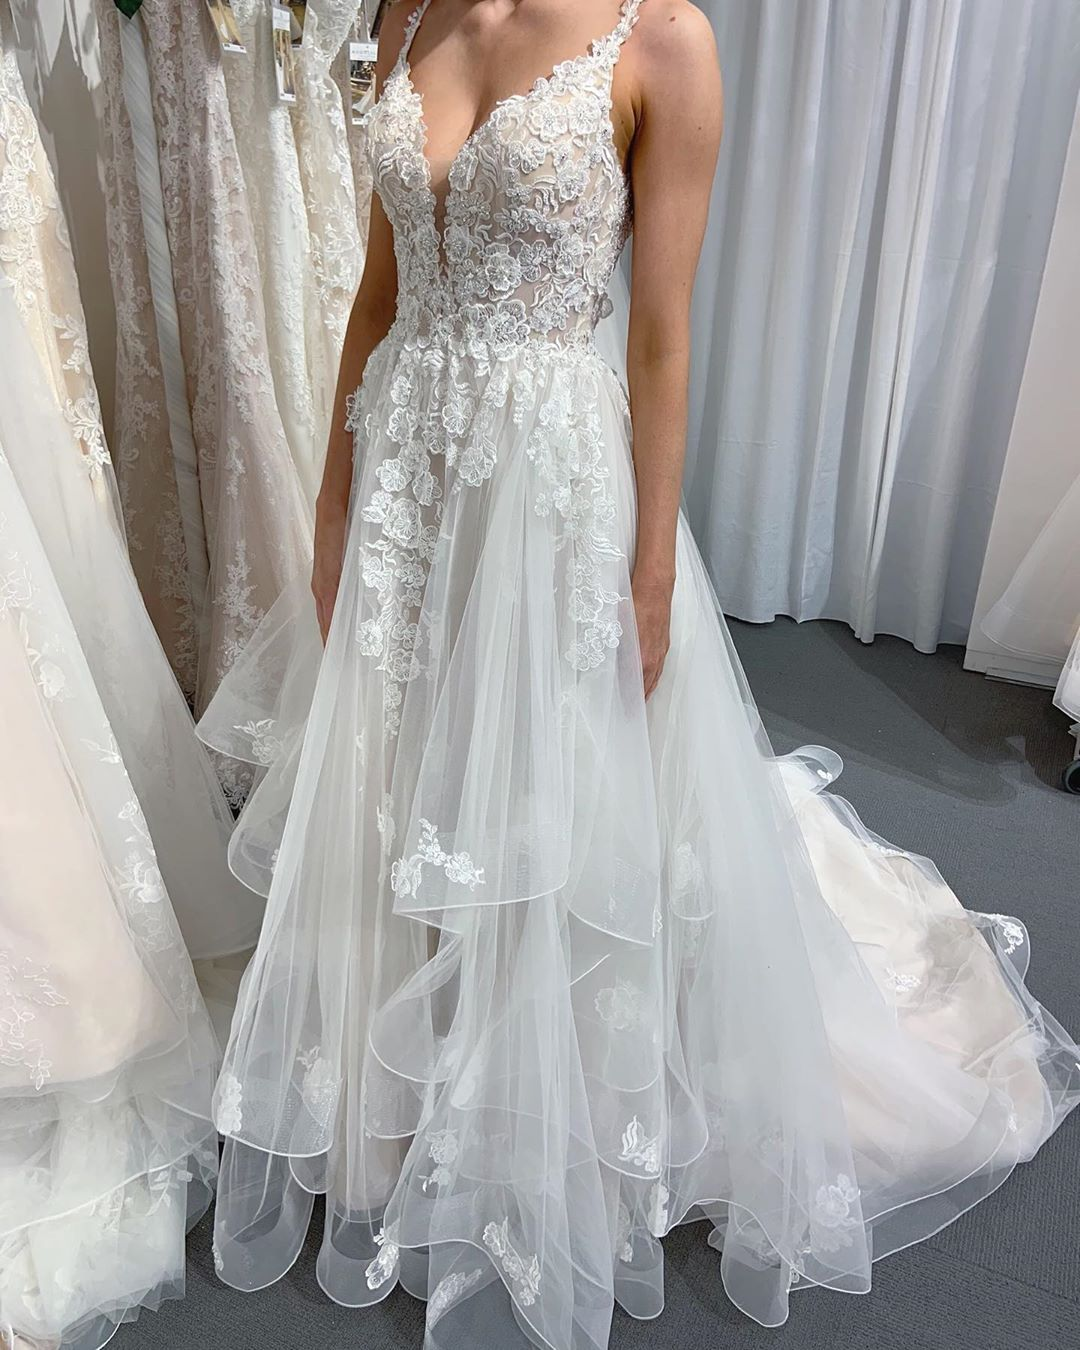 Moonlight Bridal Wedding Gowns On Instagram When We Say H1394 Is Our It Dress We Mean It This Stunner Moonlight Bridal Bridal Dresses Wedding Dresses [ 1350 x 1080 Pixel ]